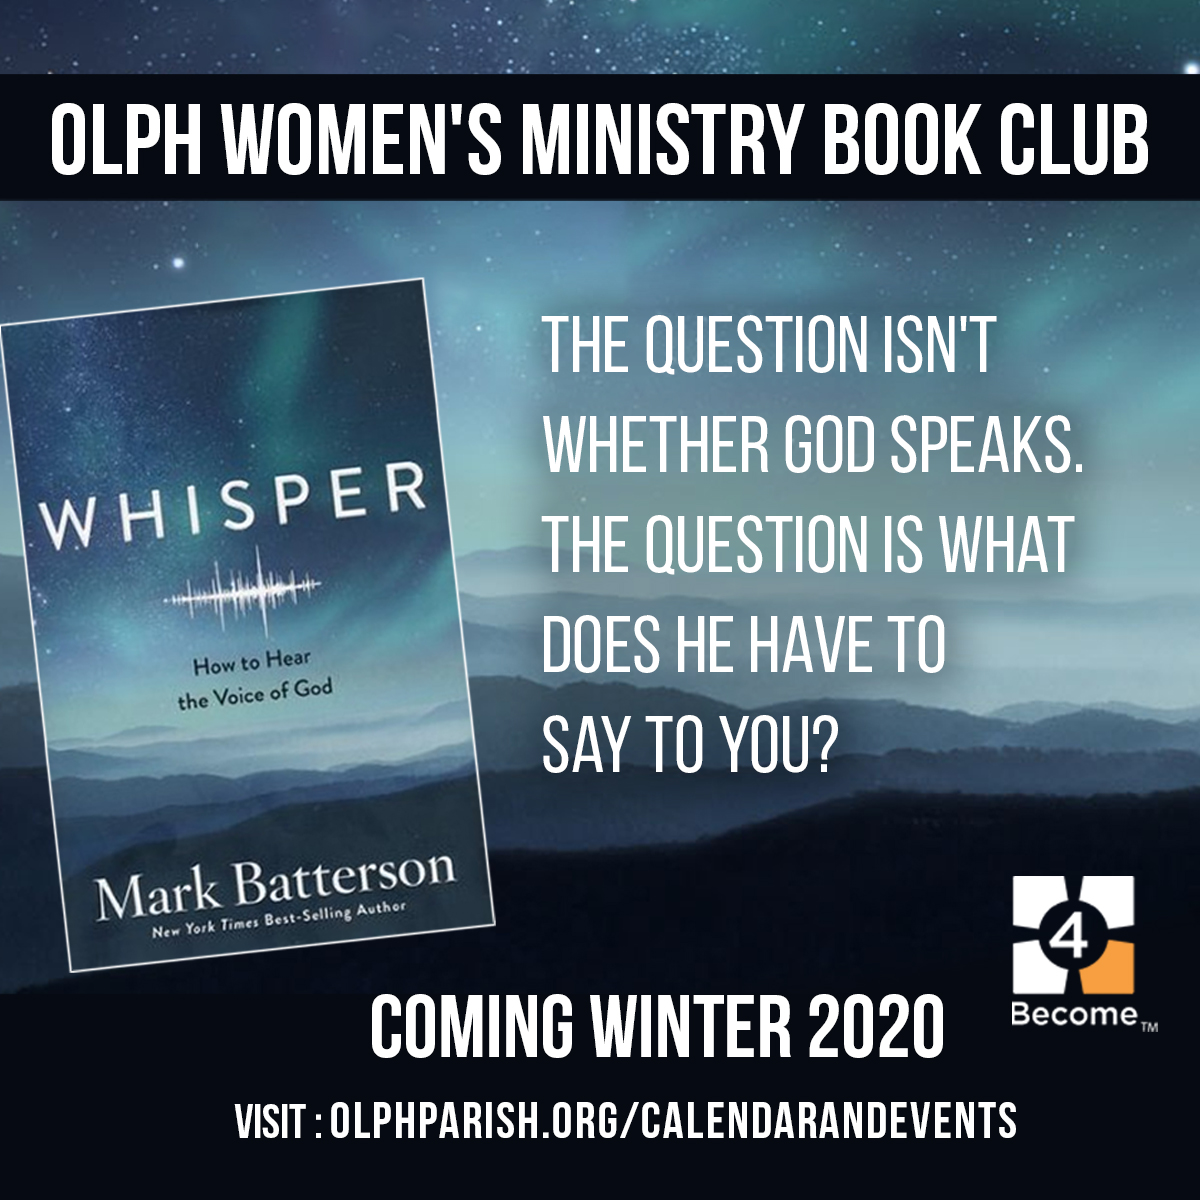 Graphic for OLPH Women's Ministry Book Club